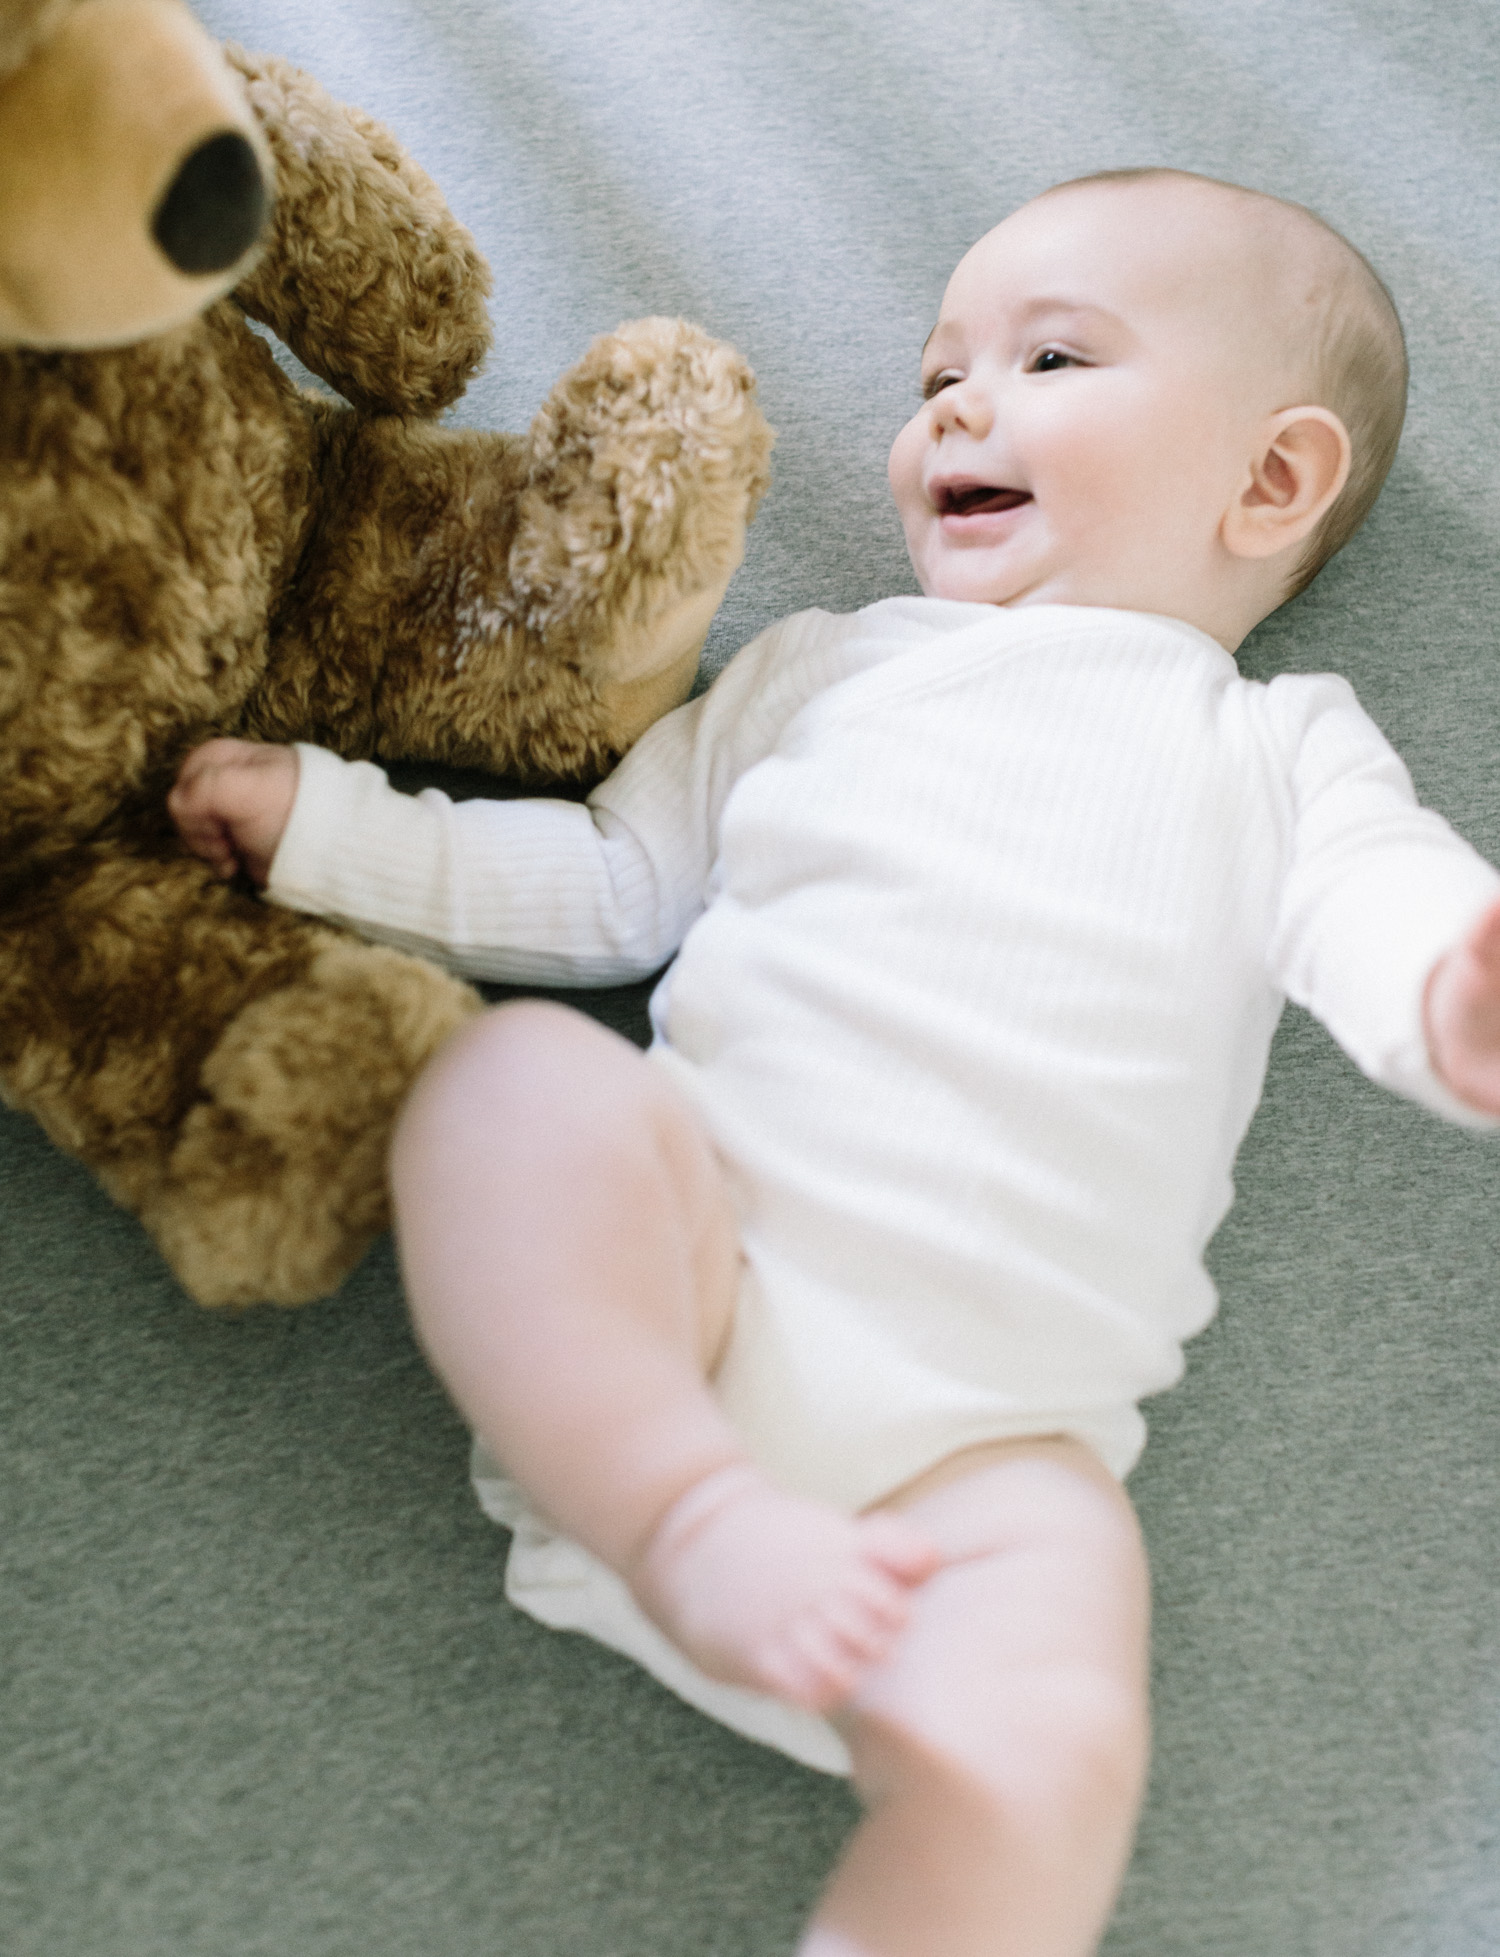 A baby boy smiles next to a stuffed bear during family photos at home in Lansing, Michigan